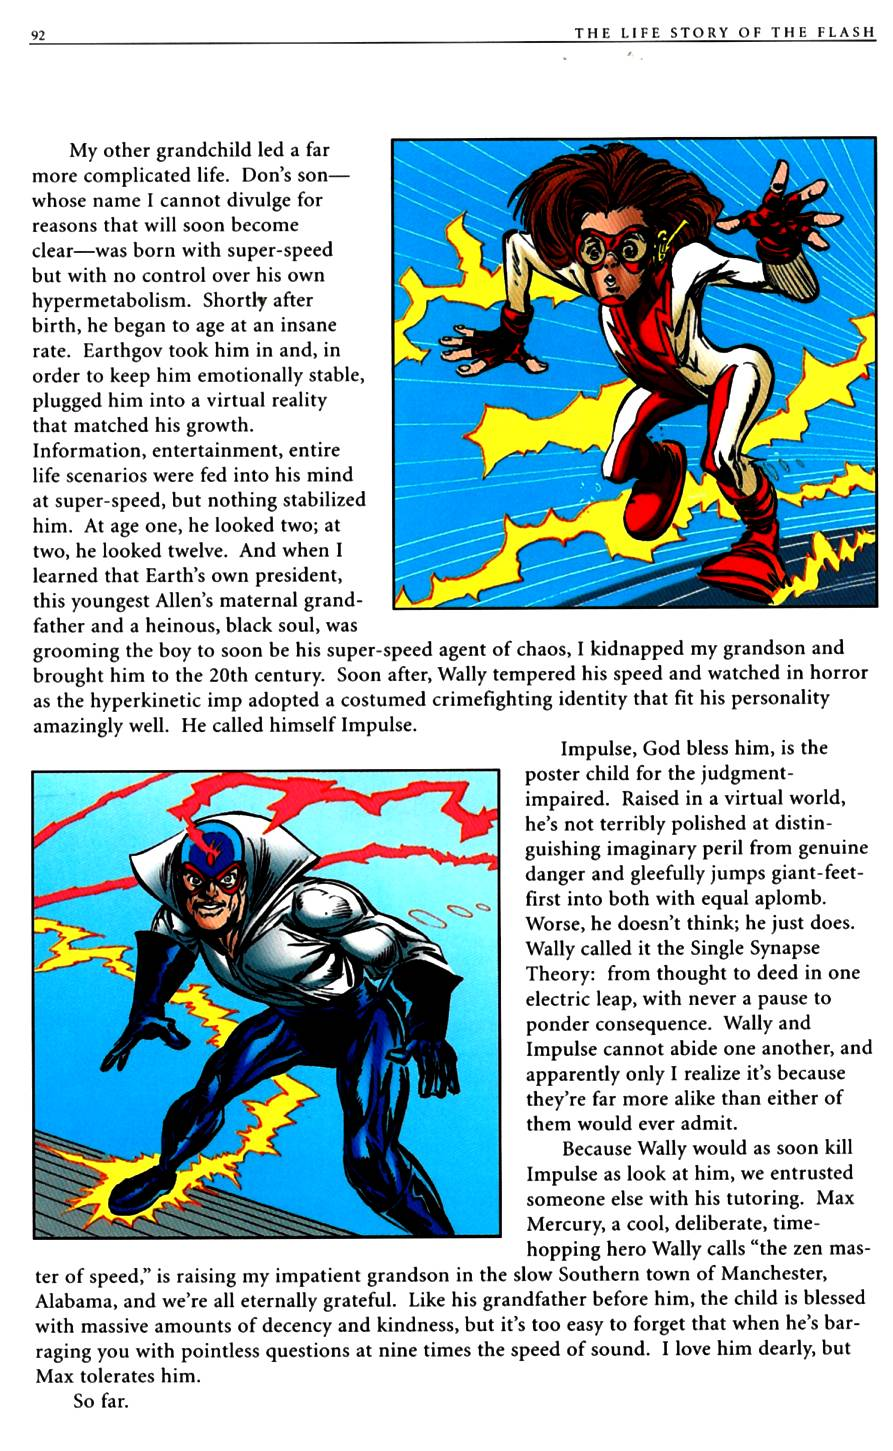 Read online The Life Story of the Flash comic -  Issue # Full - 94